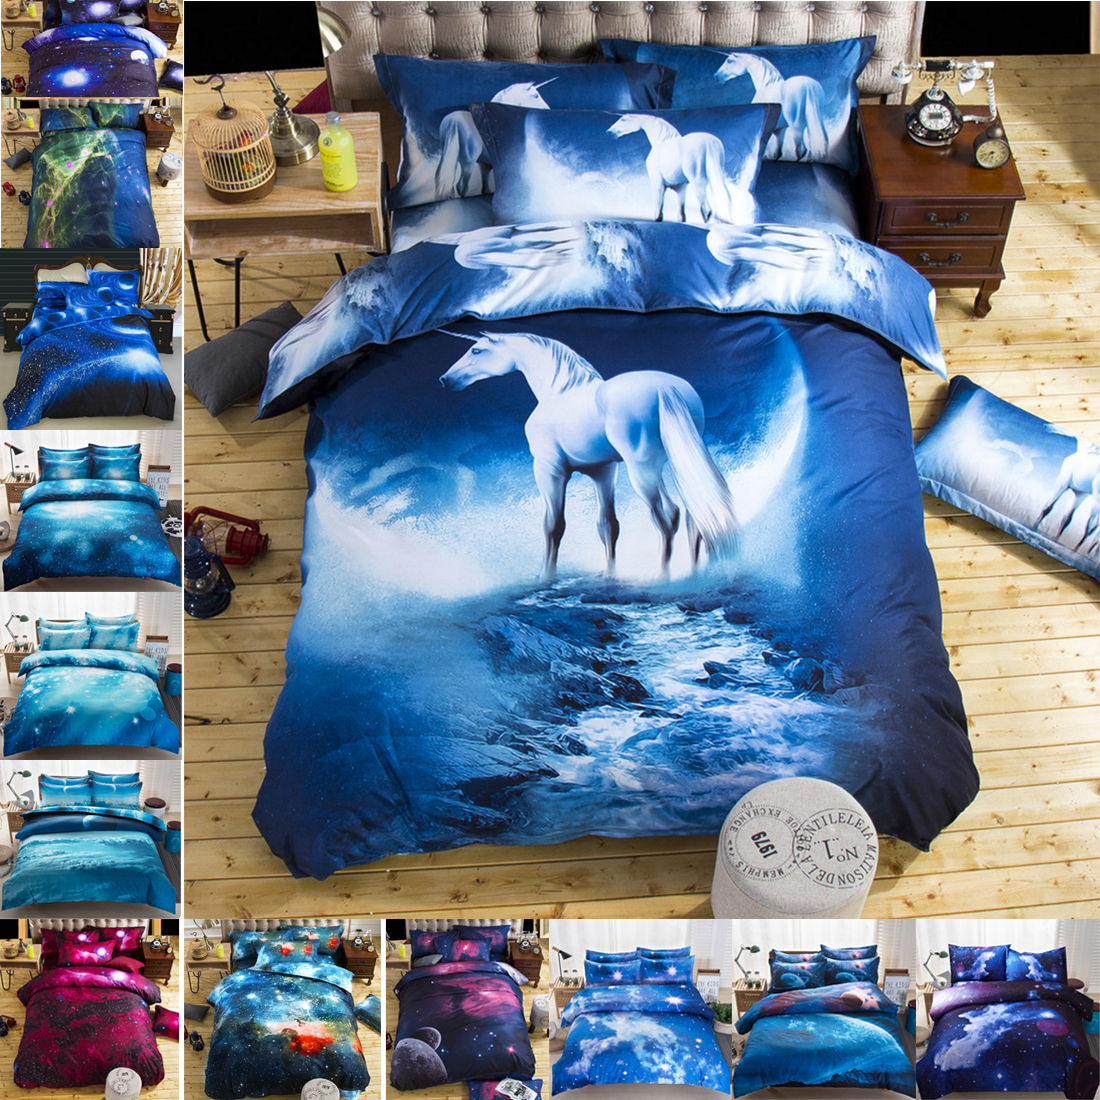 Single double twin queen 2pcs 3pcs 4pcs bedding sets for Outer space bedding